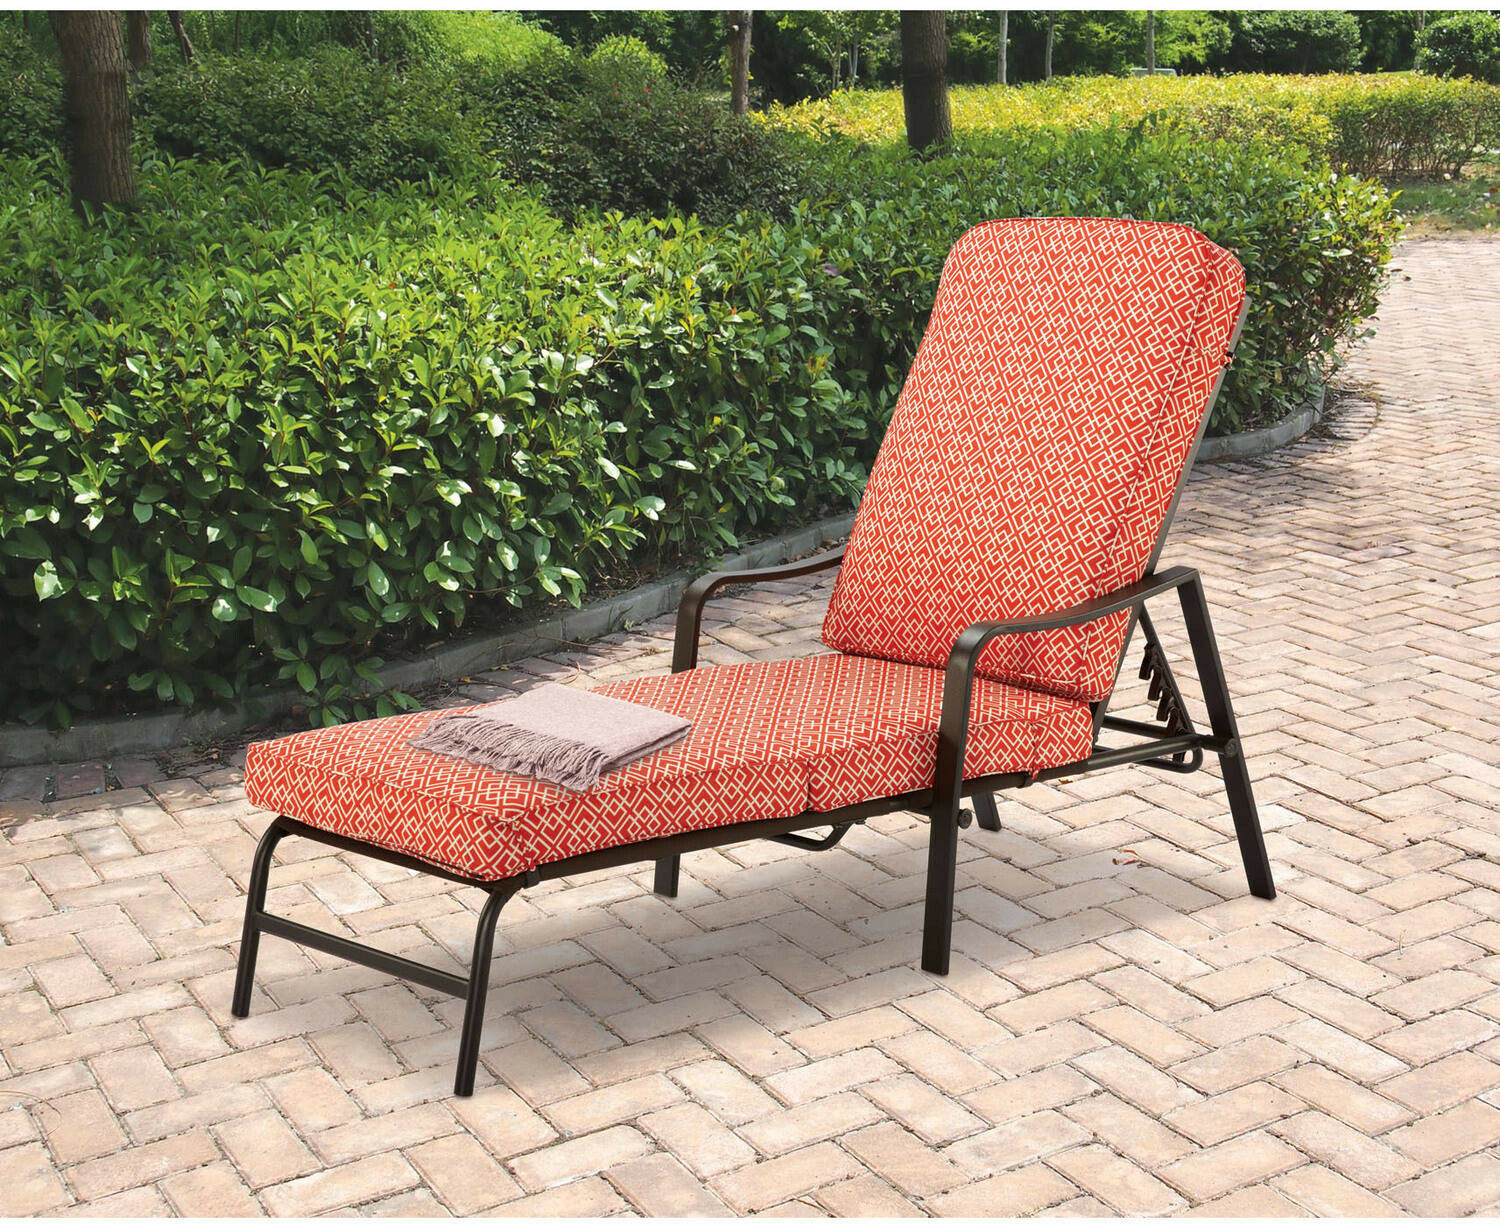 Chaise Lounge Chair Patio Furniture